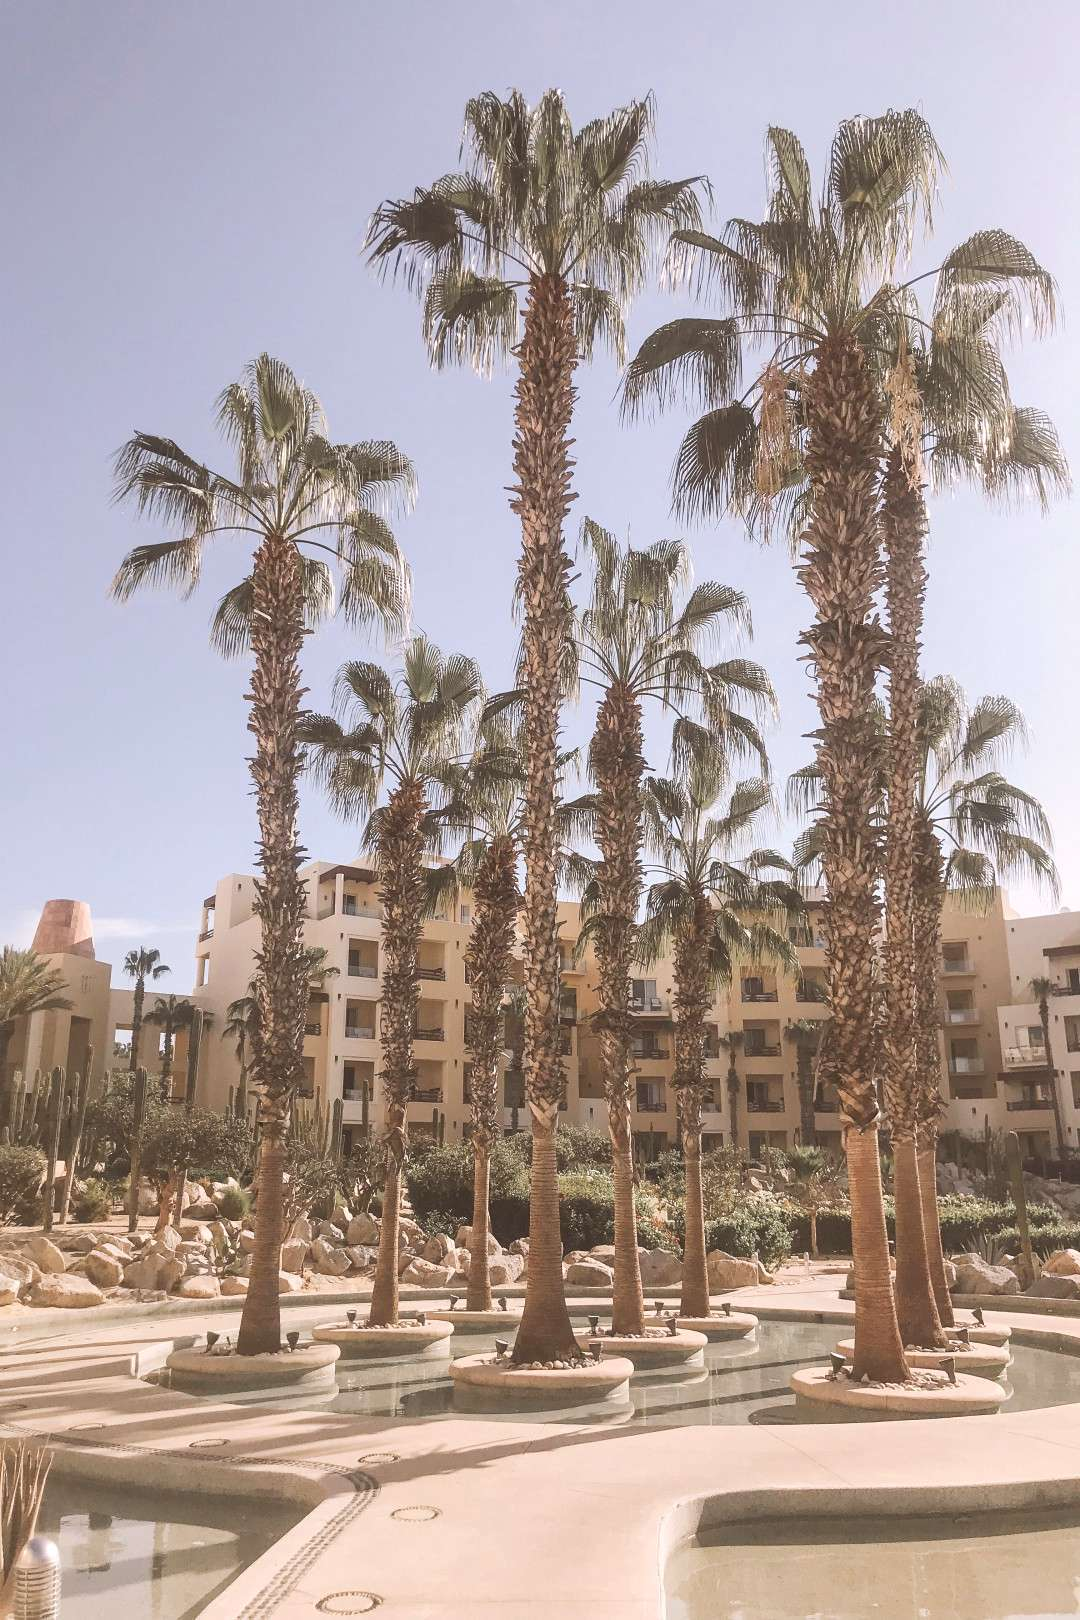 Photo Diary of Our Honeymoon in Cabo The Basics